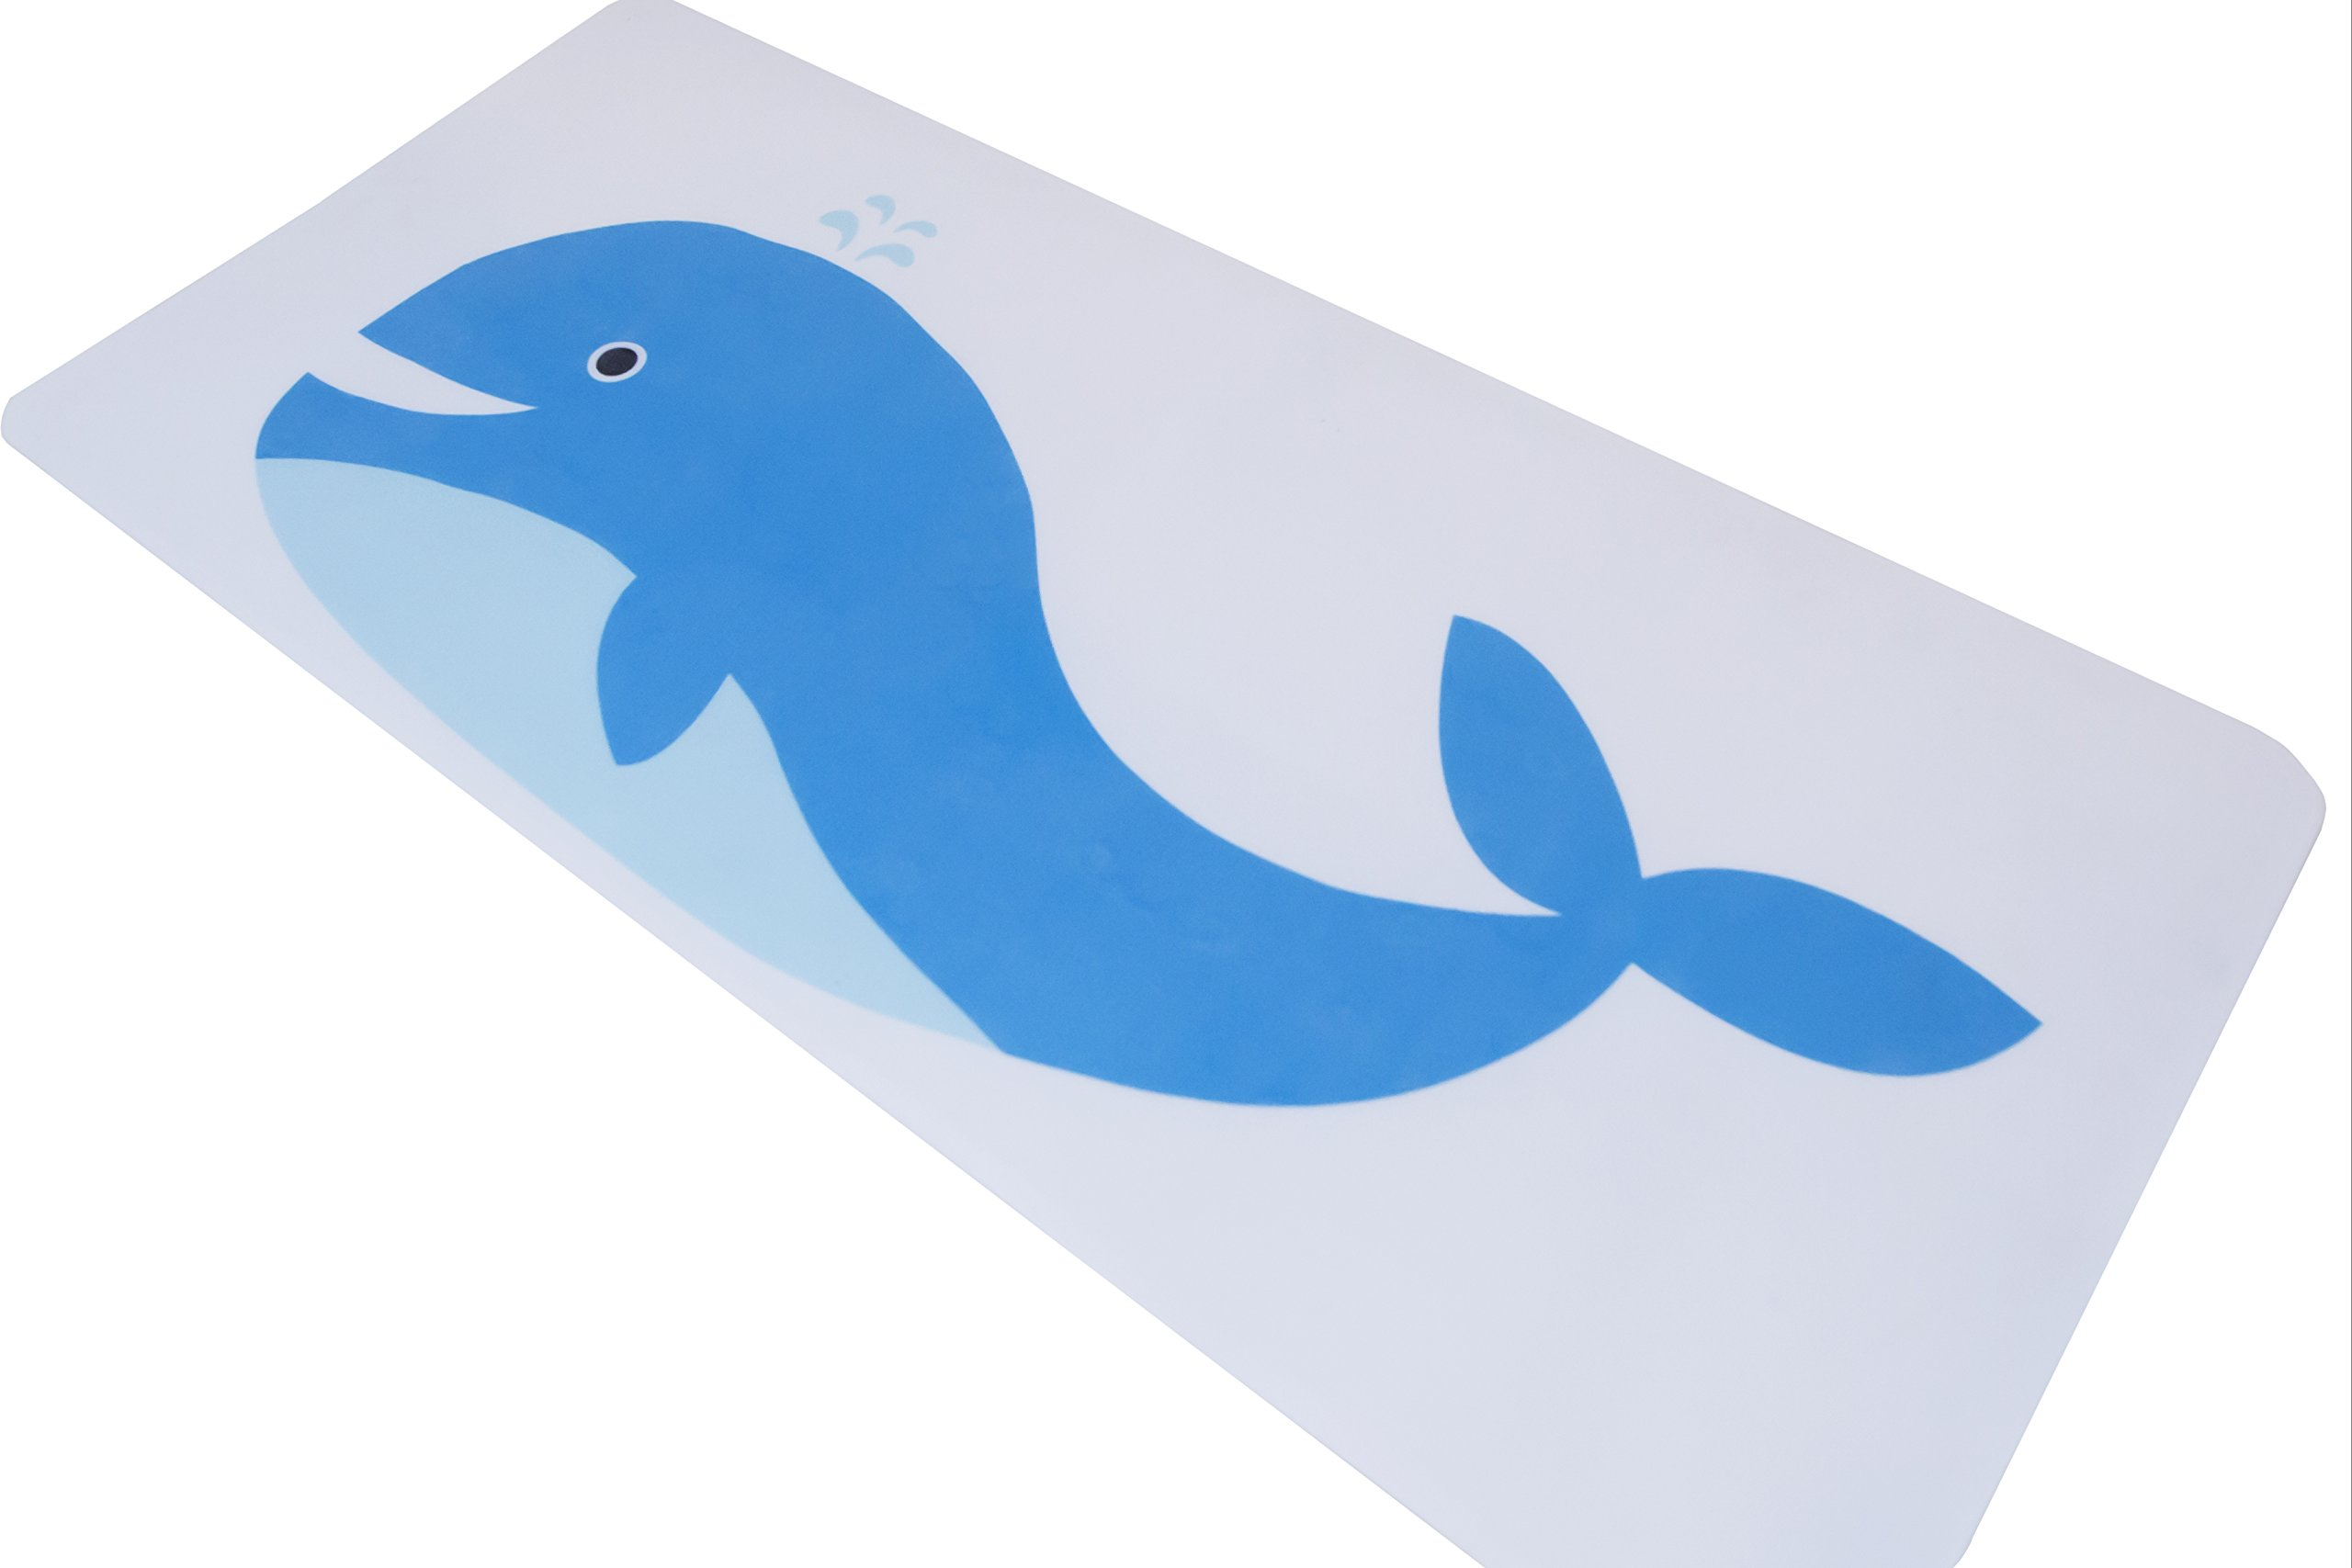 Simple Lines Company Baby Non-Slip Bath Mat (Whale) by Simple Lines Company